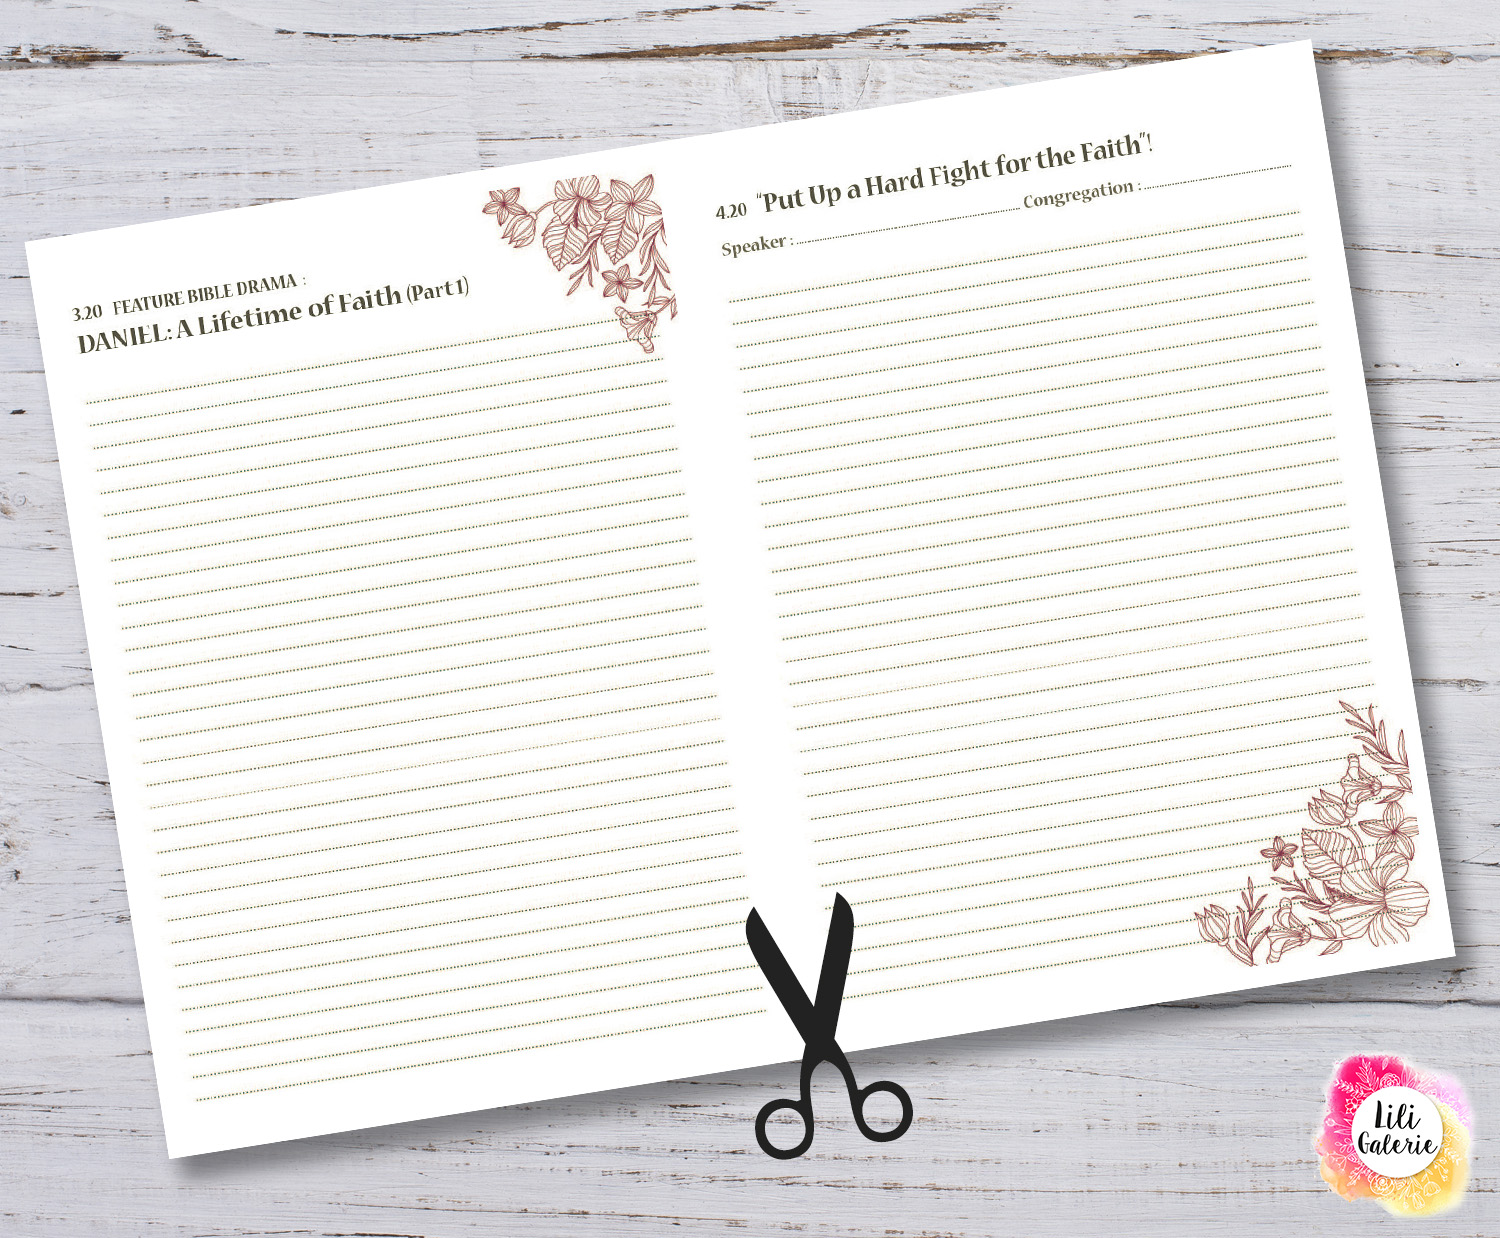 LiliGalerie-Convention Notebook 2021-powerful by faith